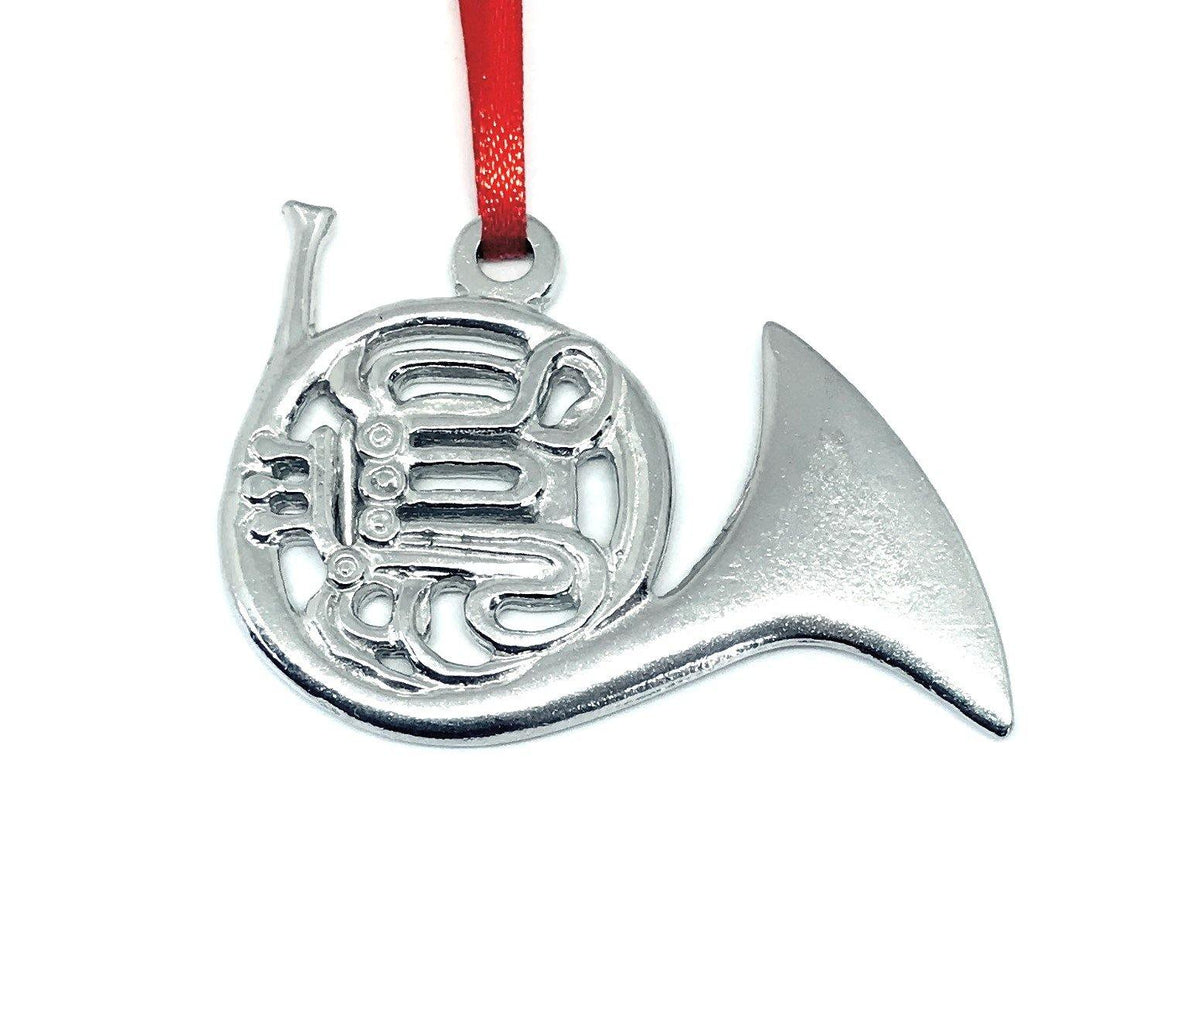 785 French Horn Brass Musical Instrument Pewter Ornament - House of Morgan Pewter